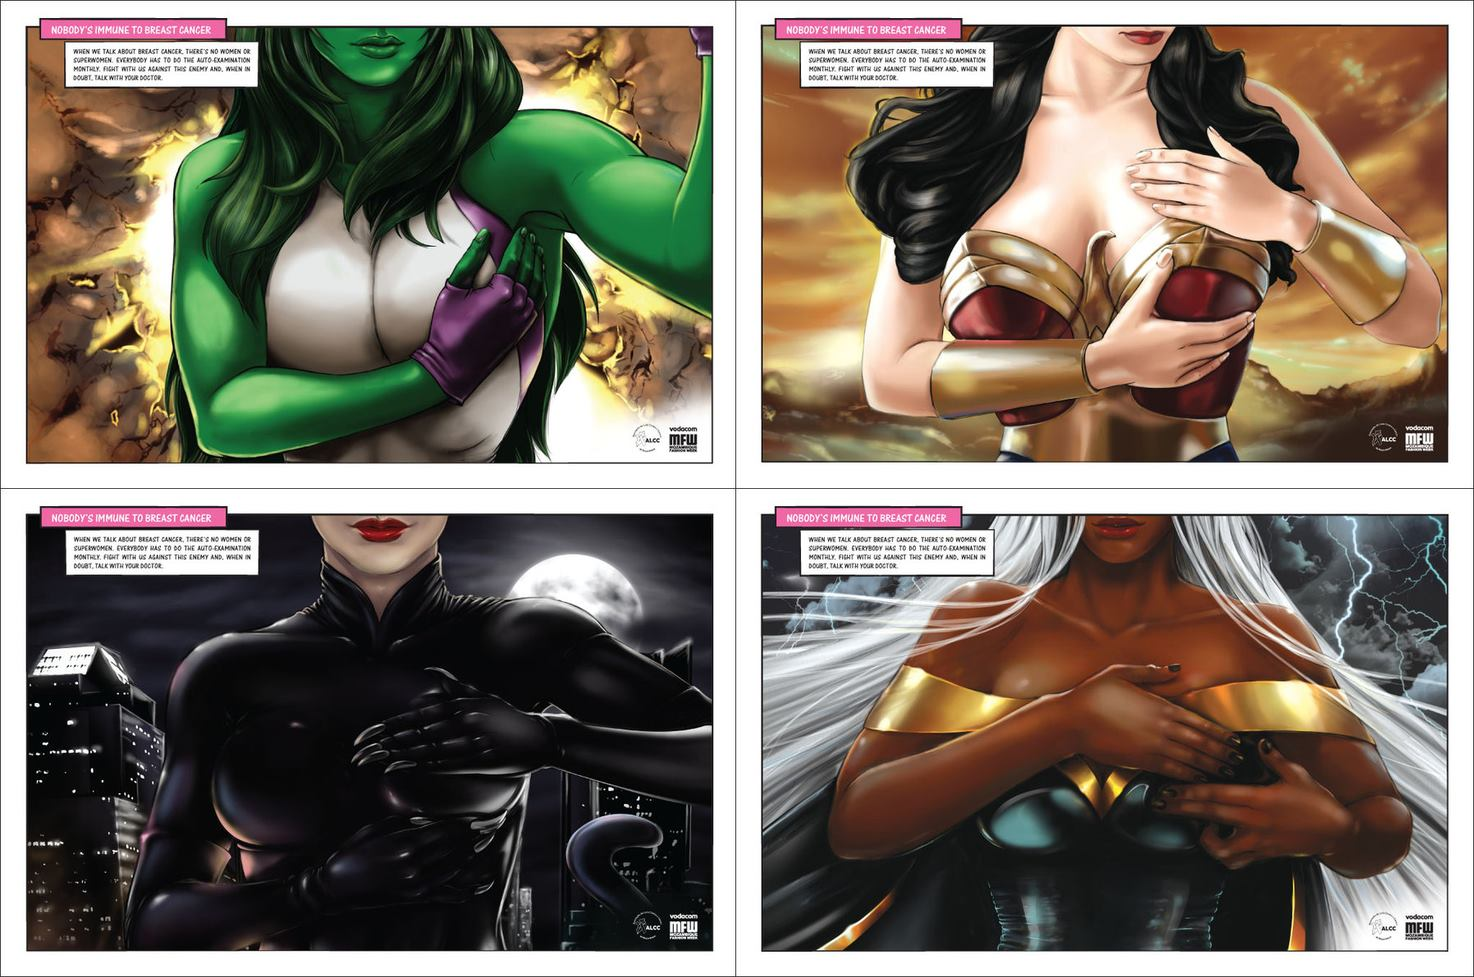 Comic book women against breast cancer?